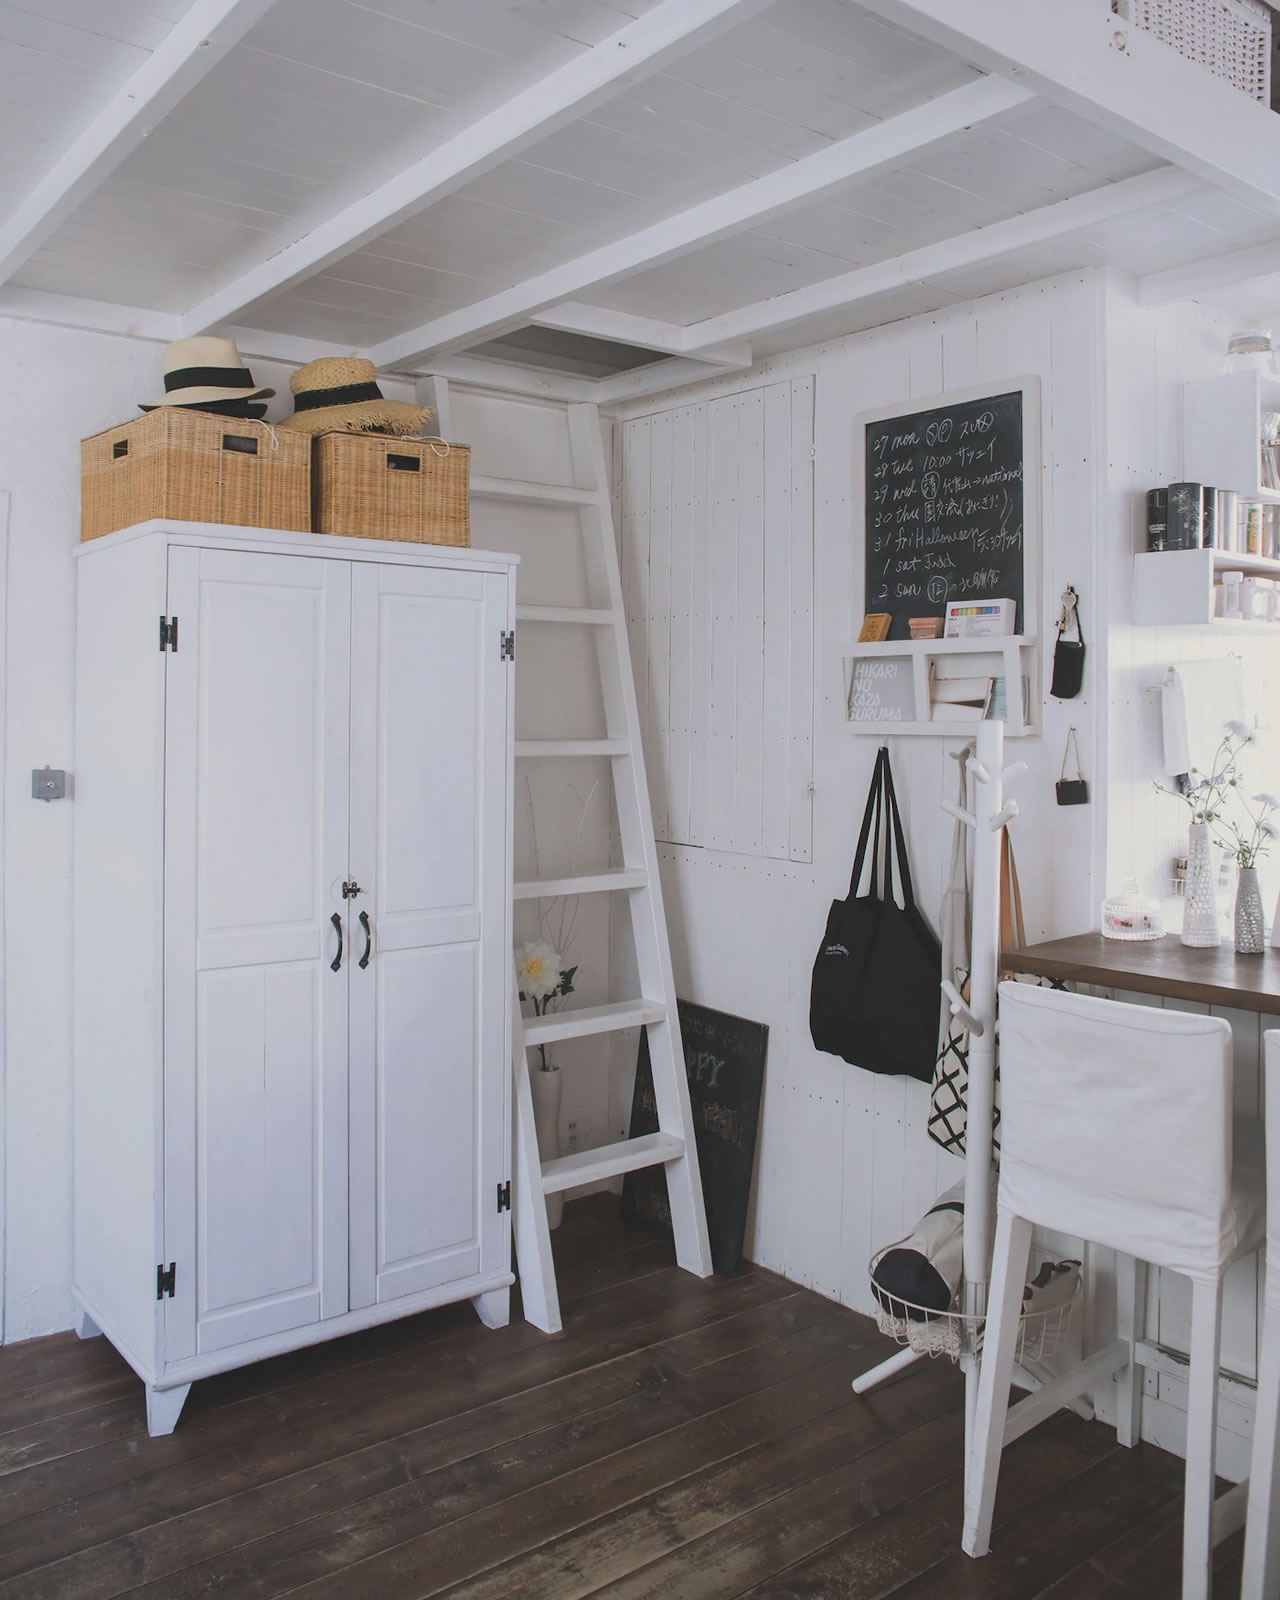 IKEA Ideas- Inventive ideas for small-space living